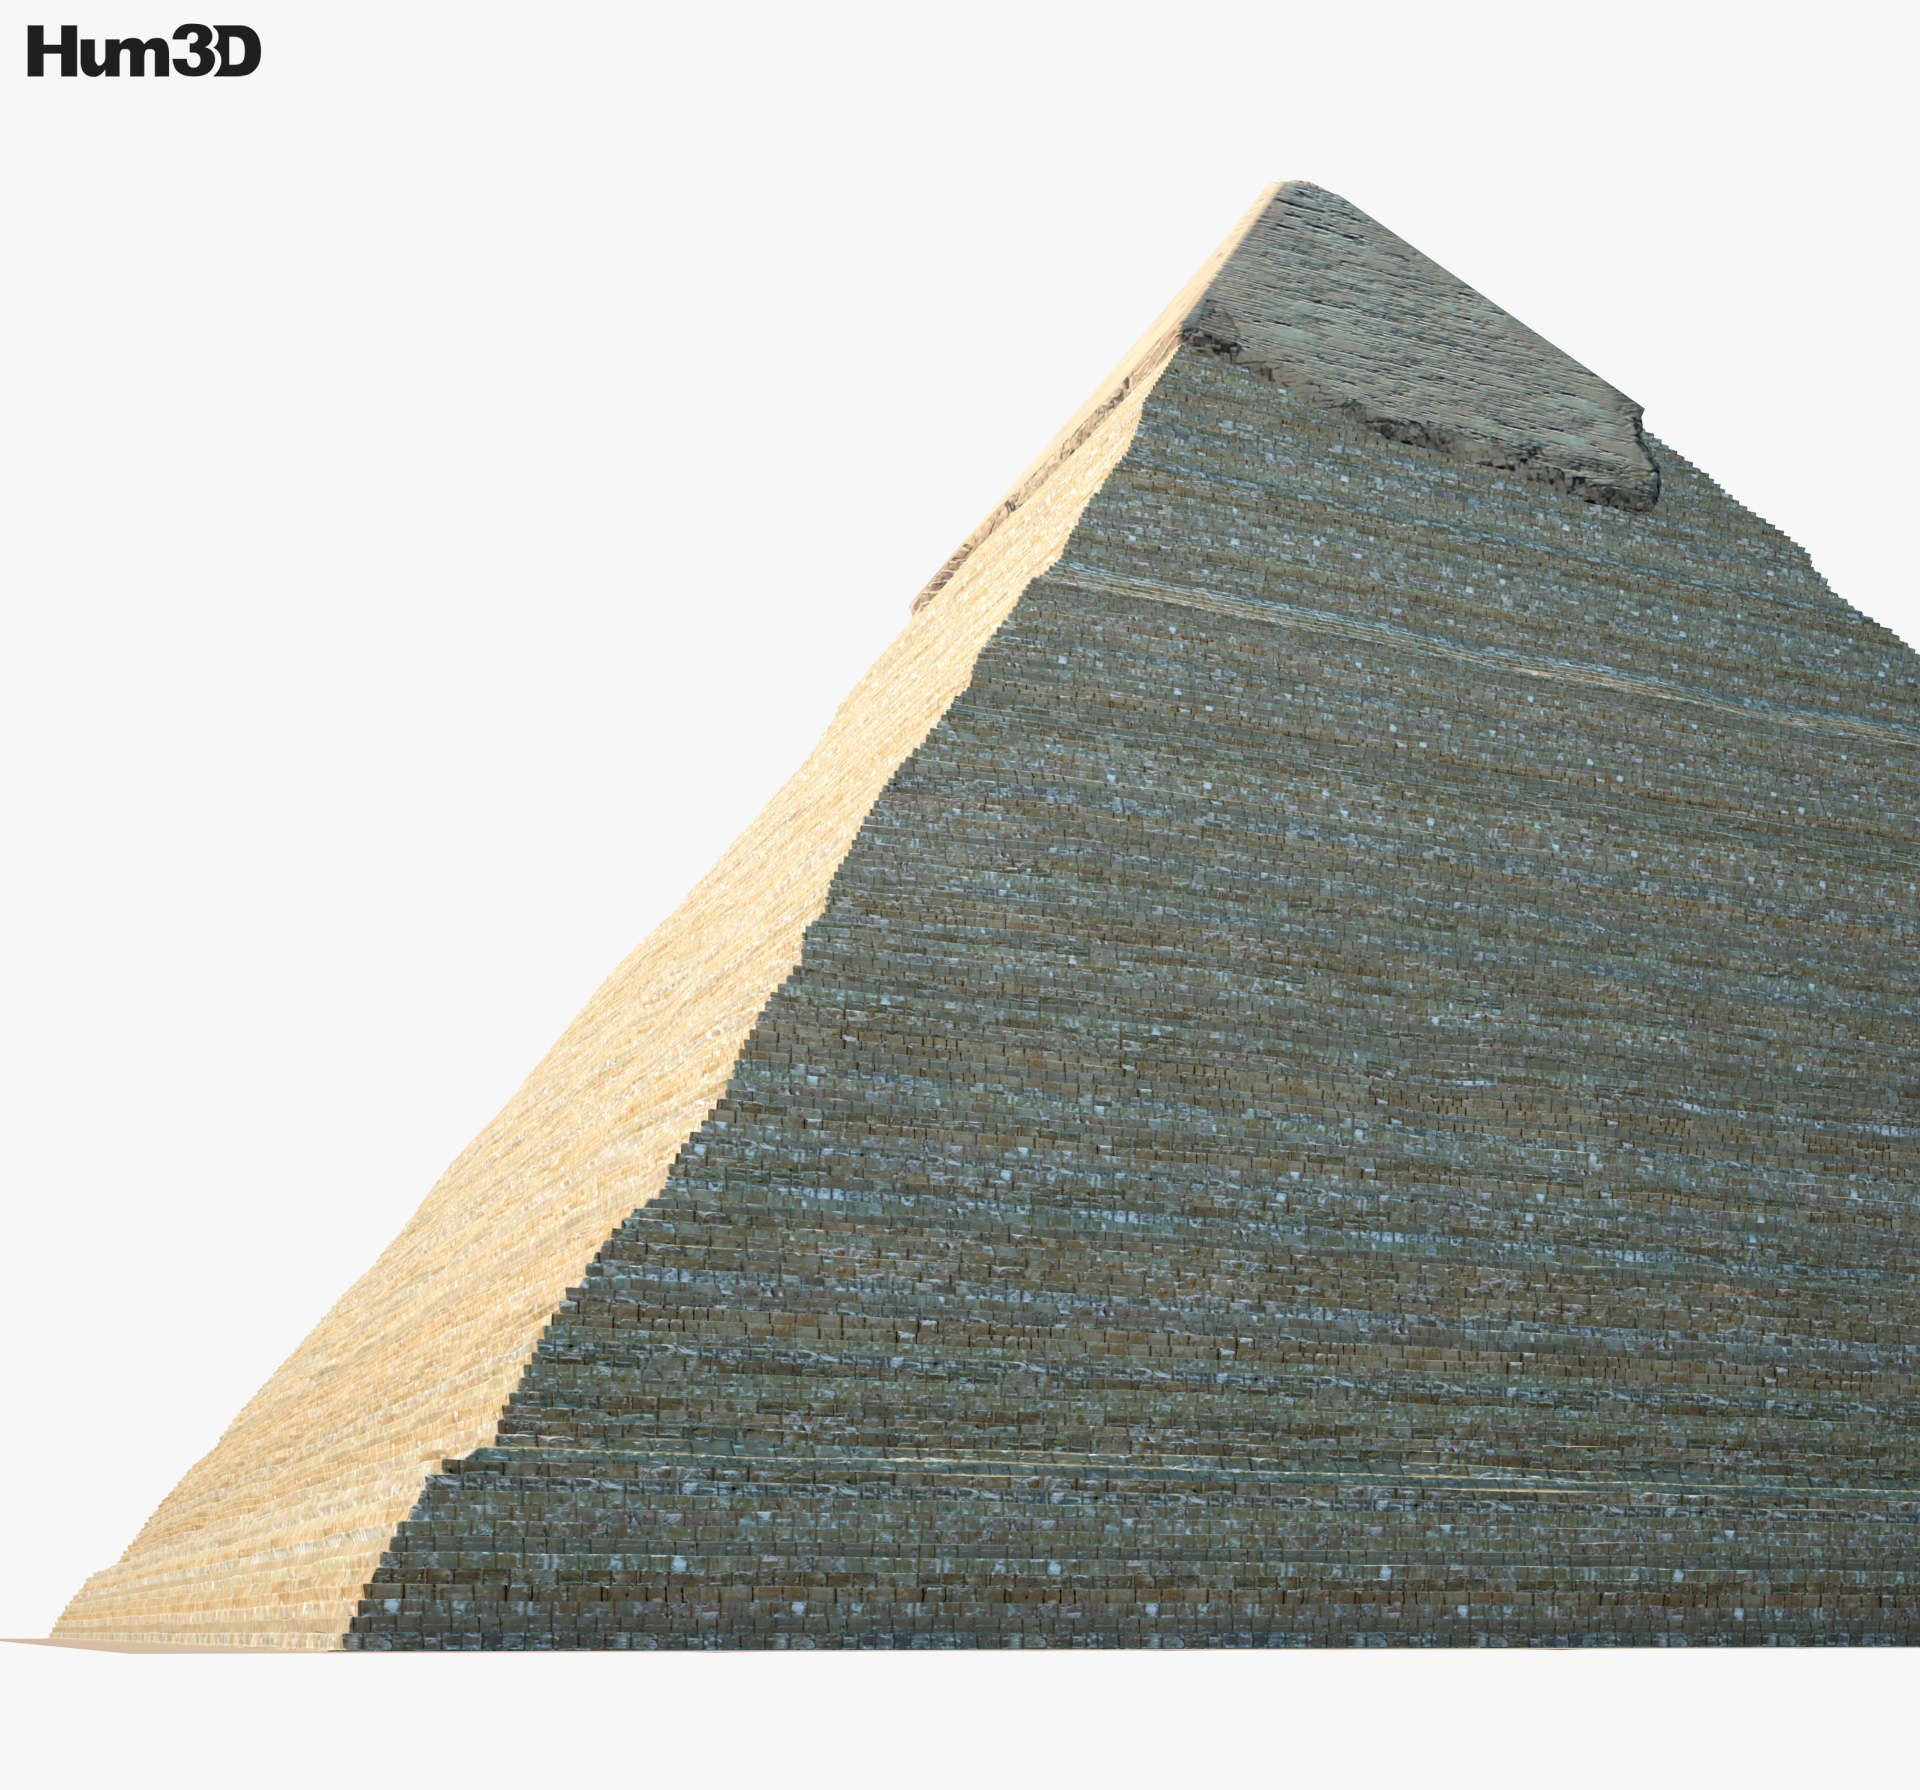 Pyramid of Khafre 3d model